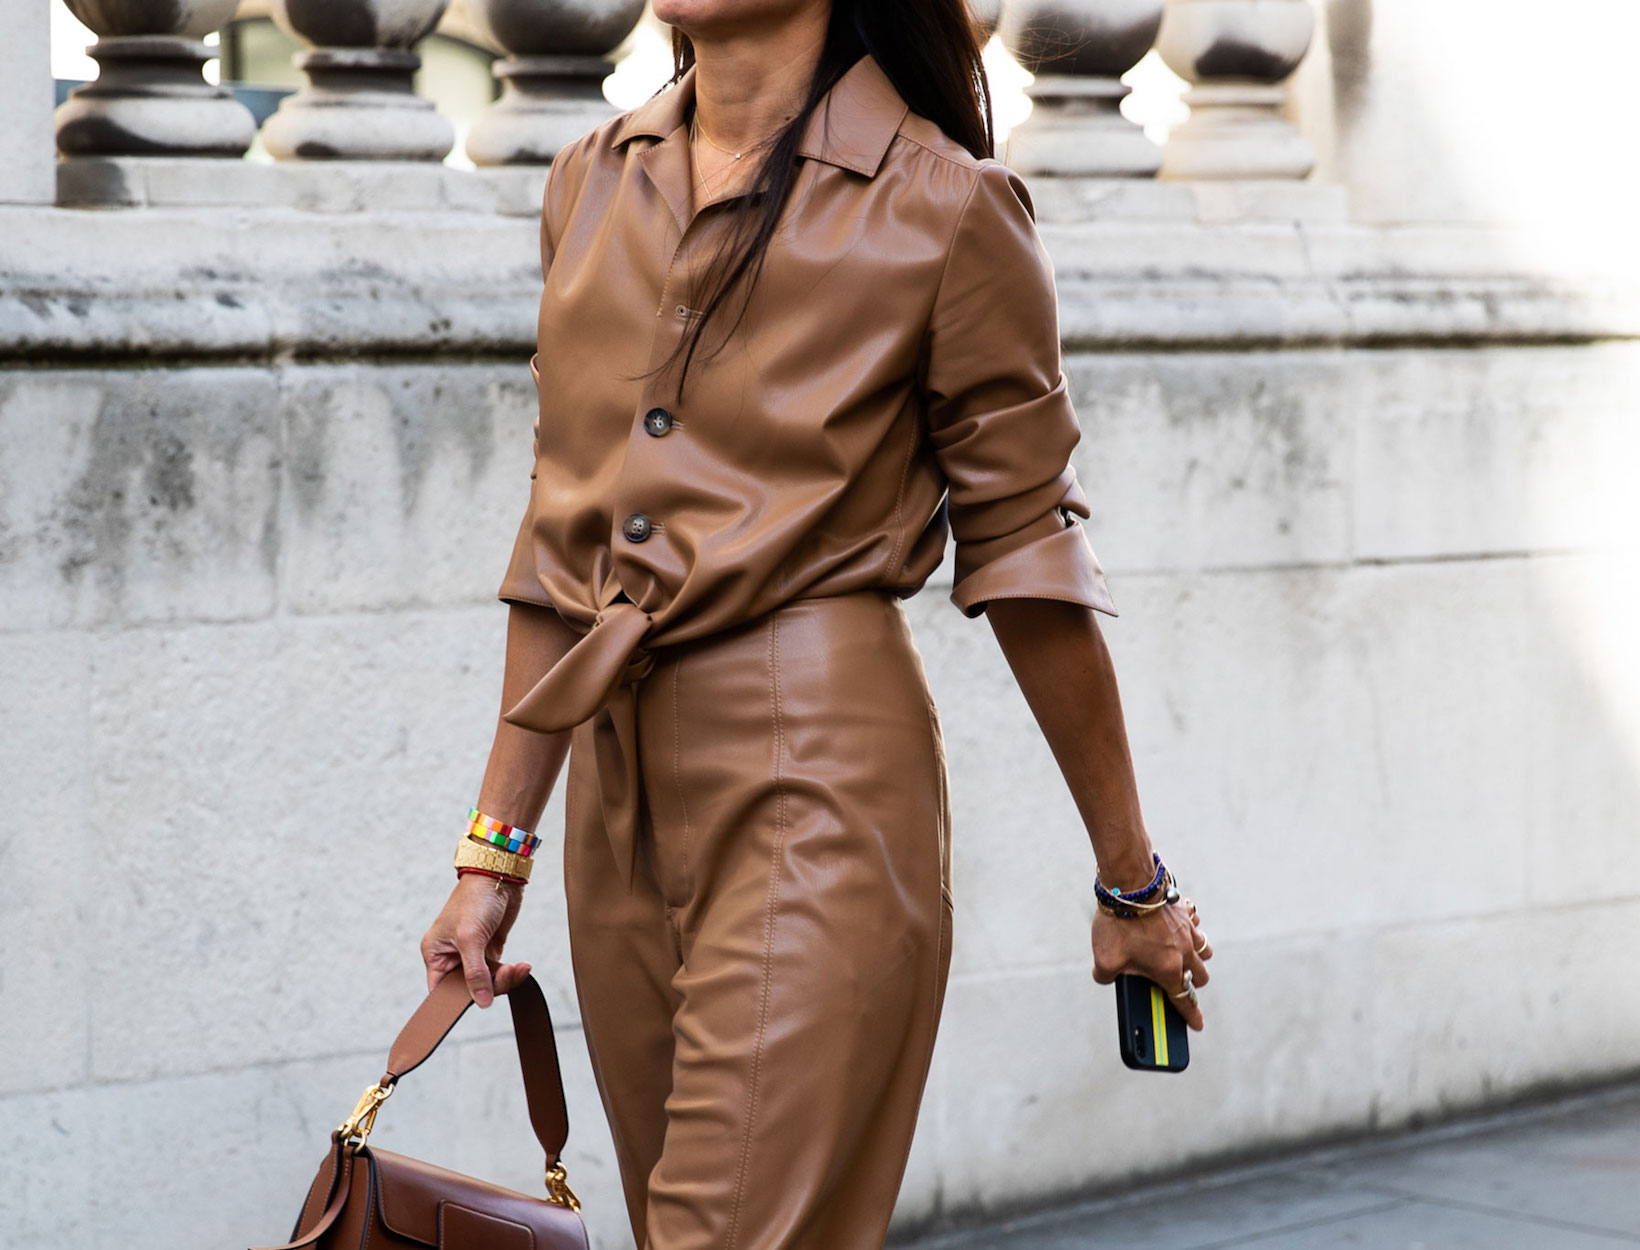 Young woman wearing a monochromatic spring outfit - a brown leather bodysuit